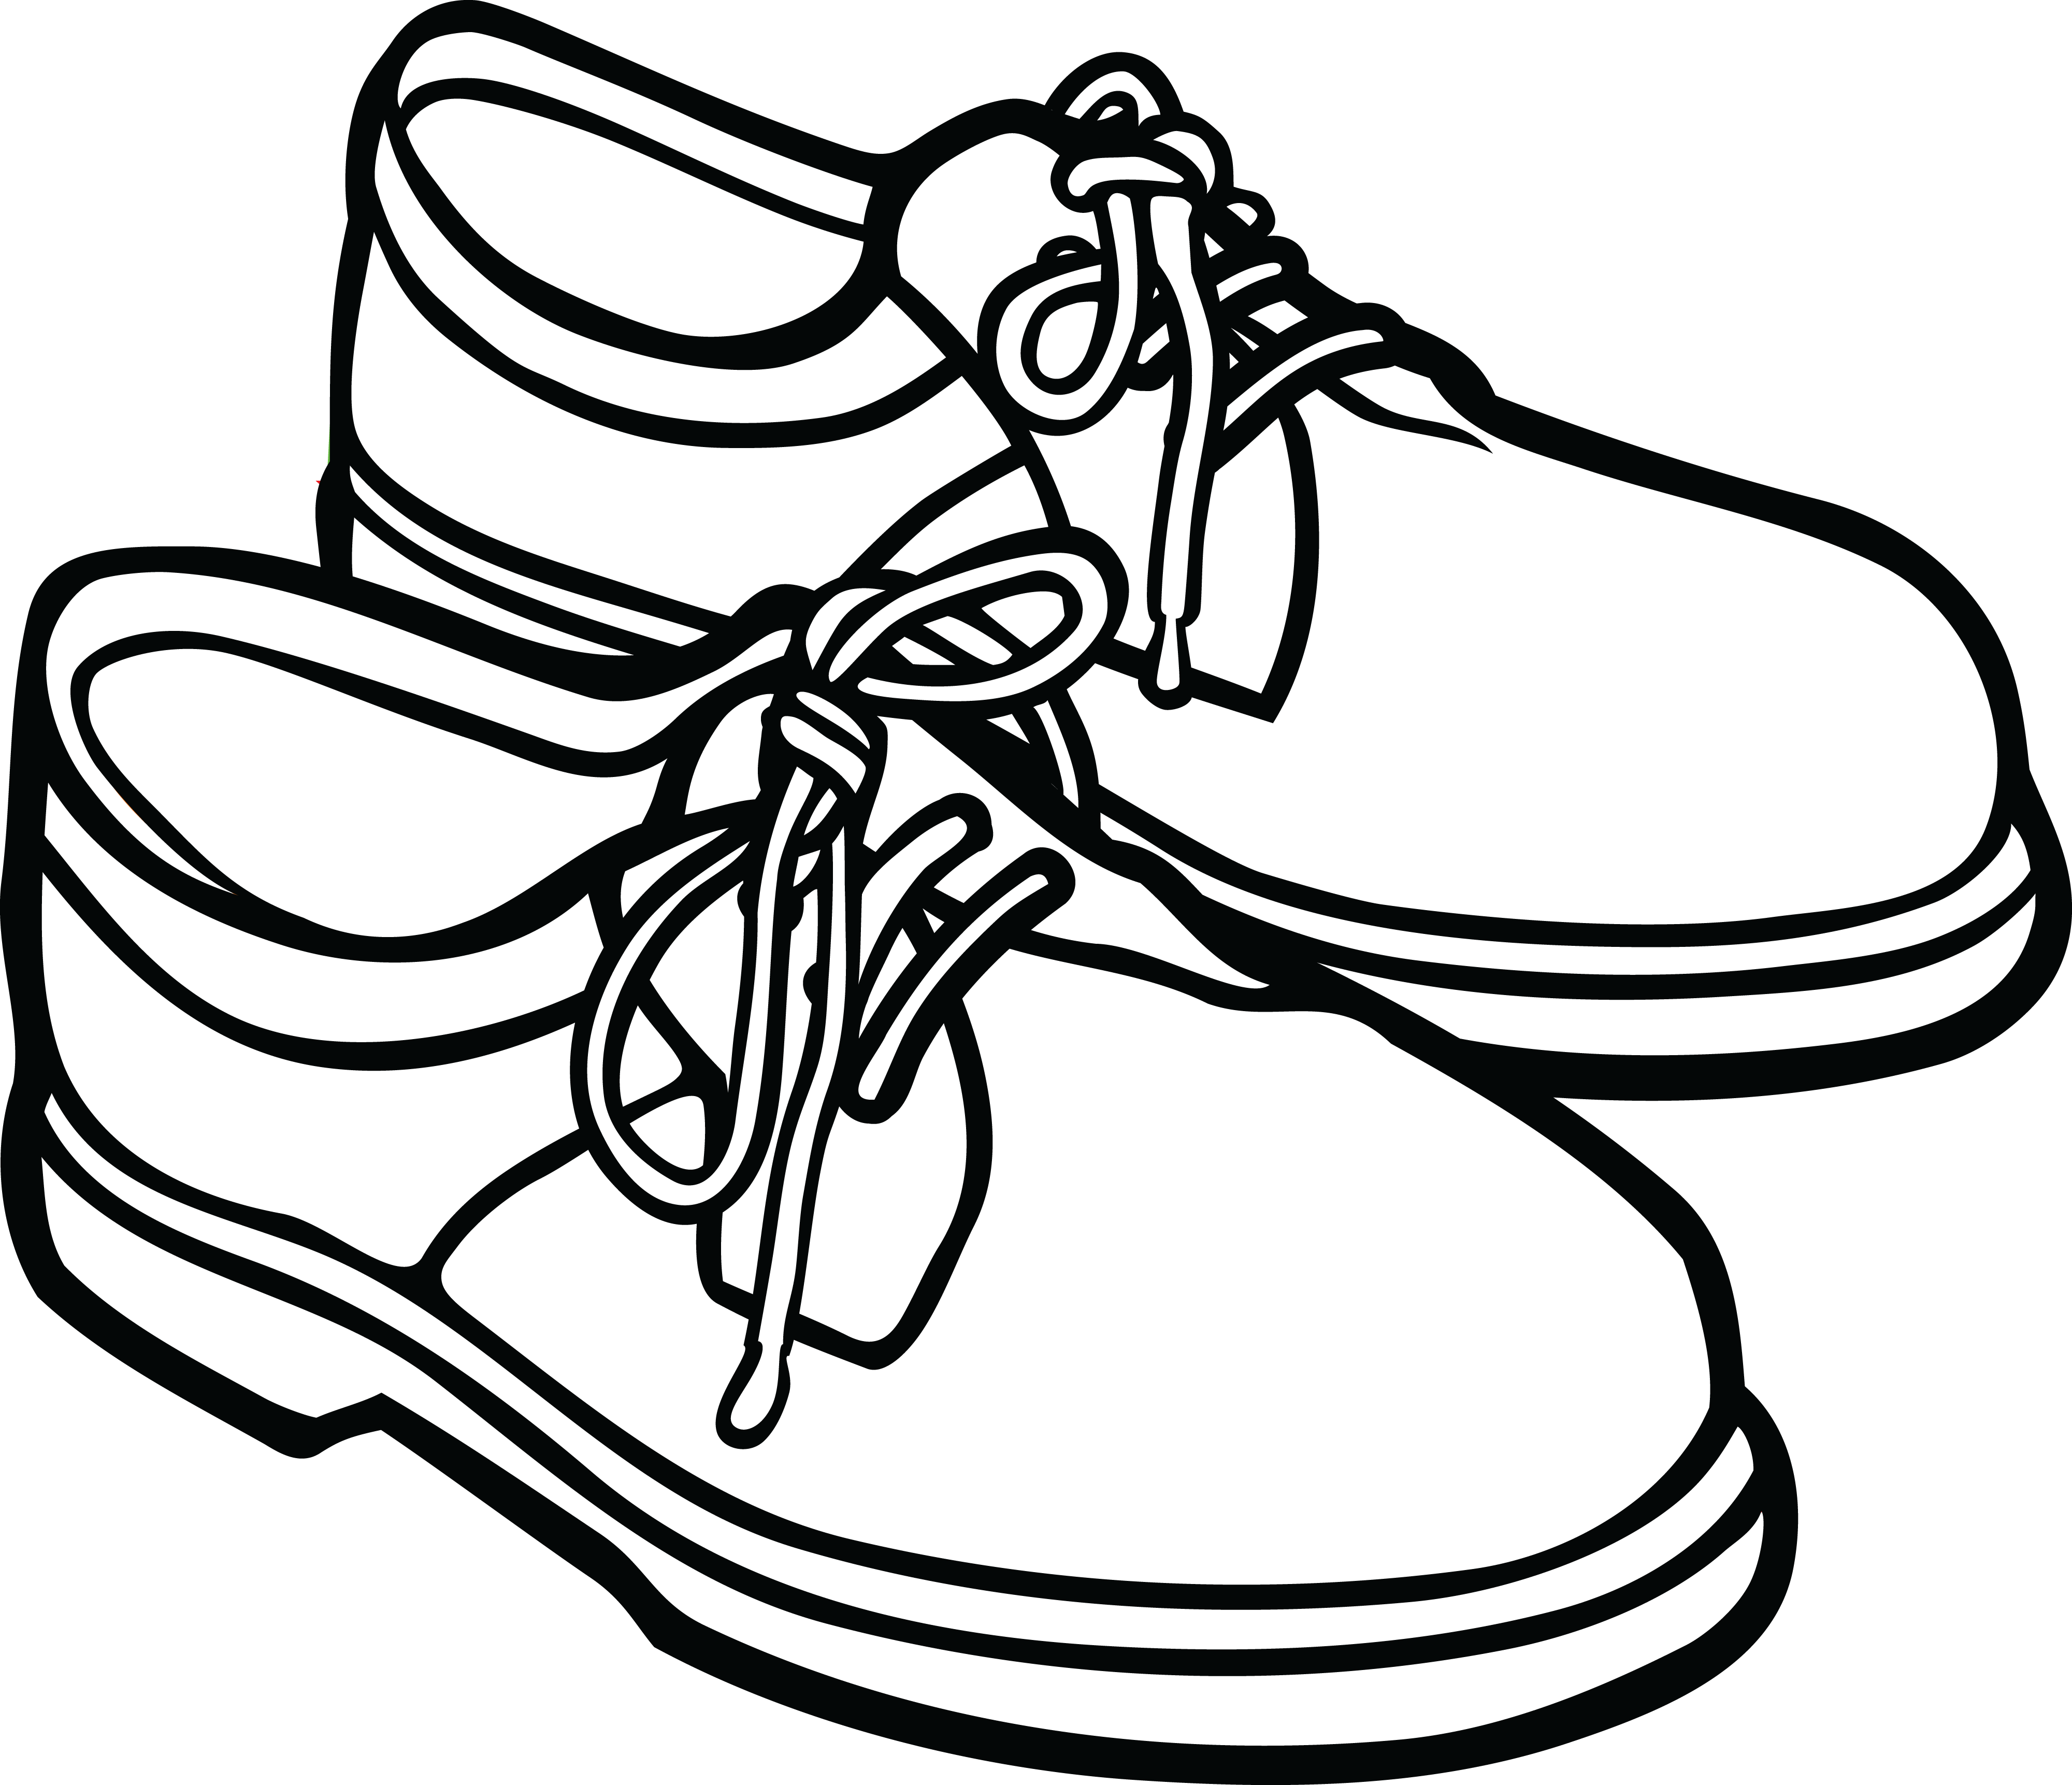 School shoes clipart black and white 4 » Clipart Station.